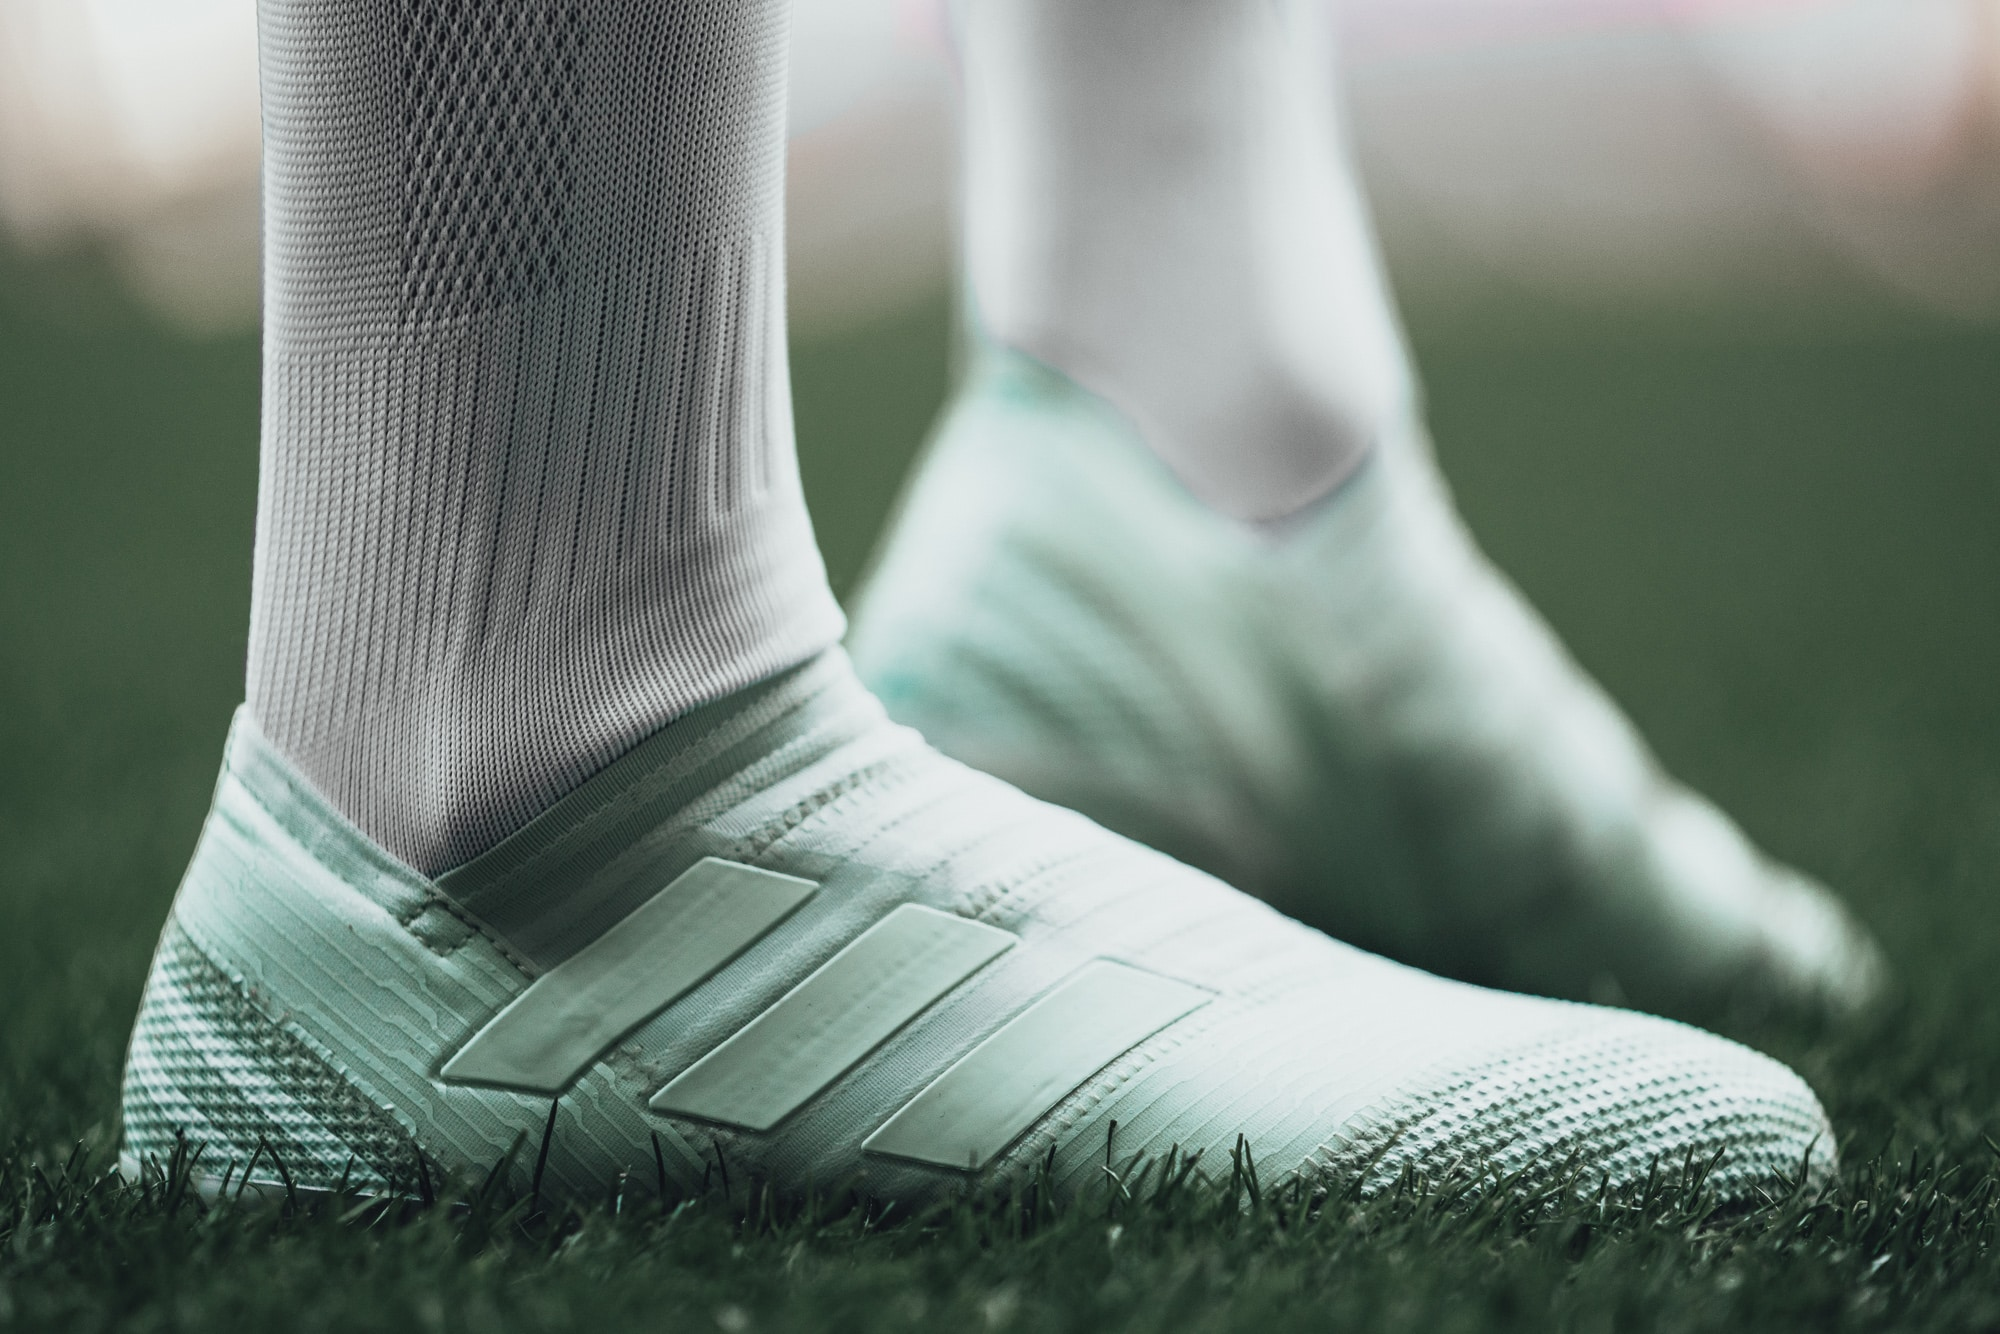 chaussure-football-adidas-nemeziz-deadly-strike-mars-2018